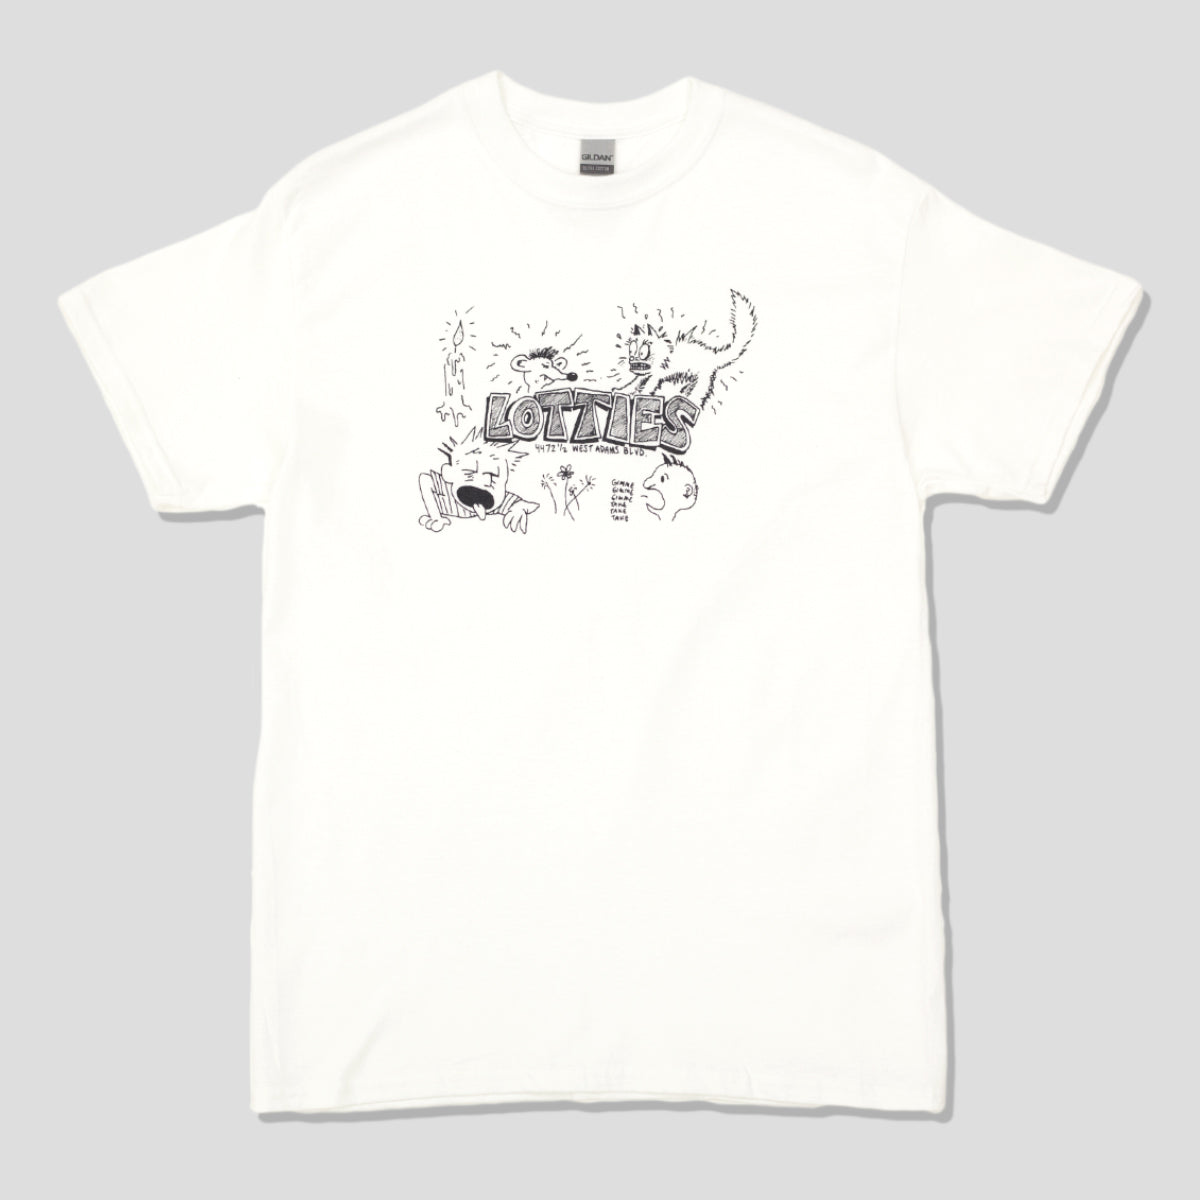 "LOTTIES ""GIMME"" TEE WHITE"